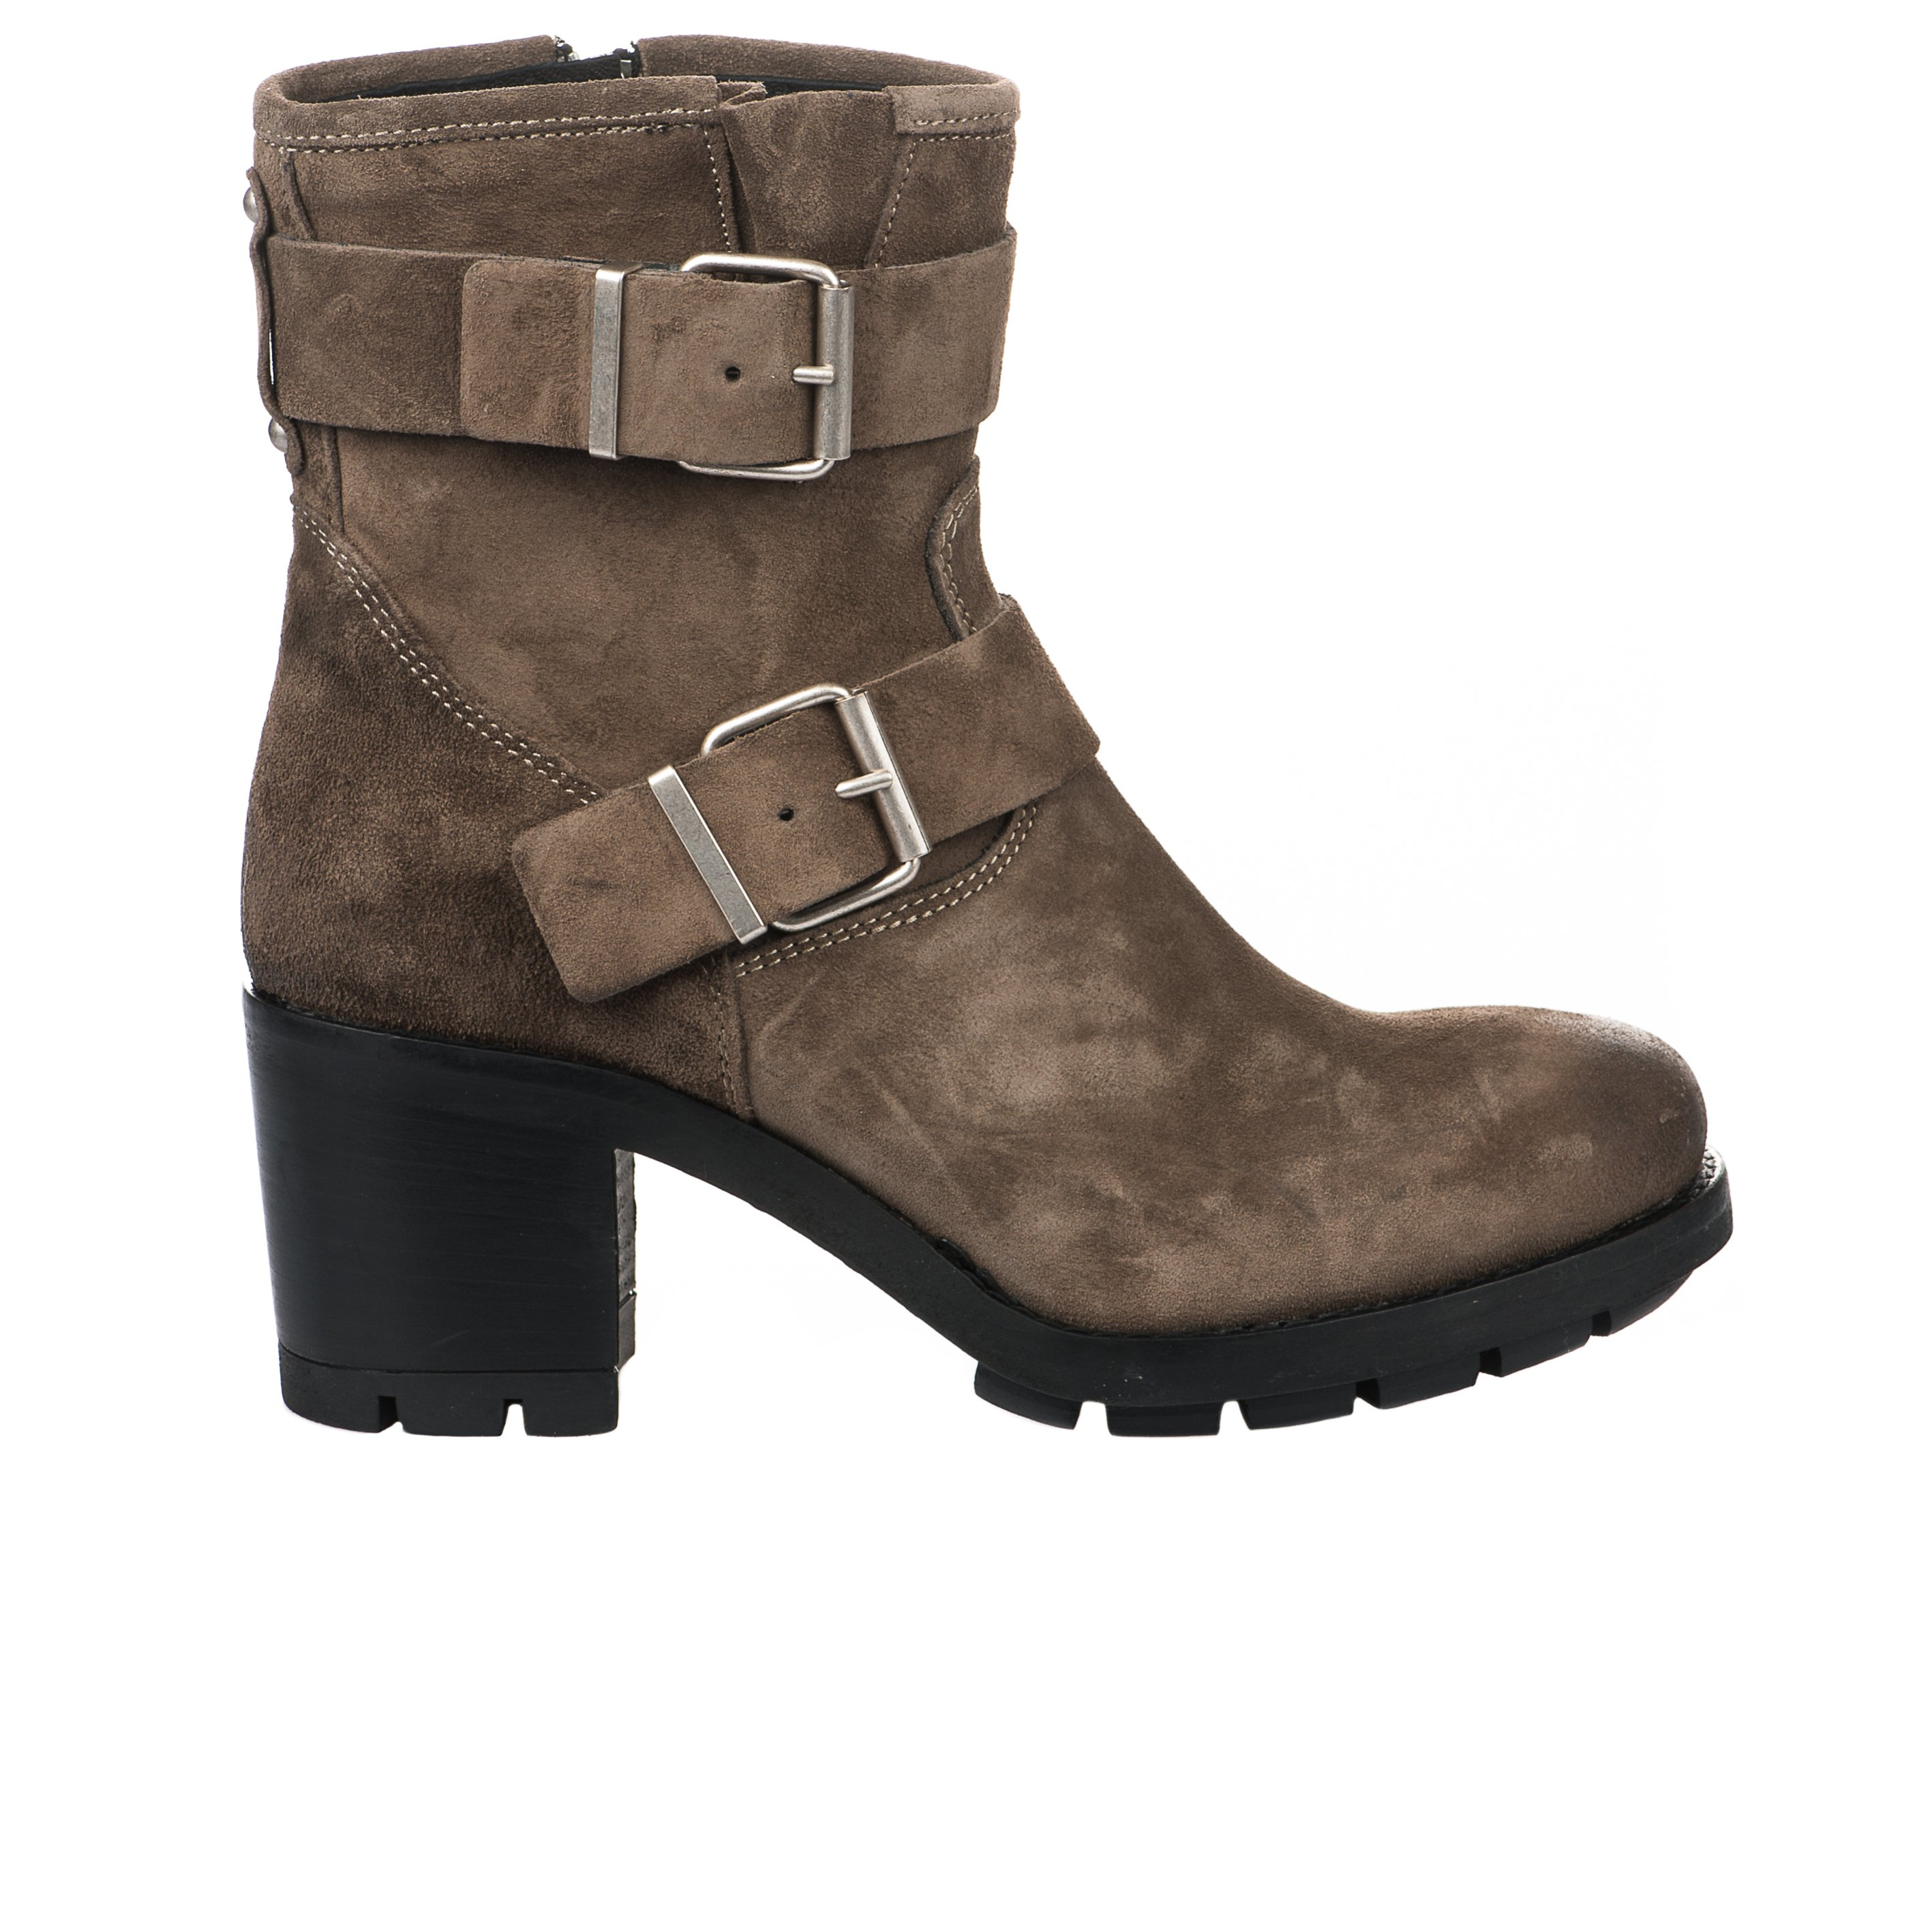 Boots Paoyama taupe femme FREE 70 66055